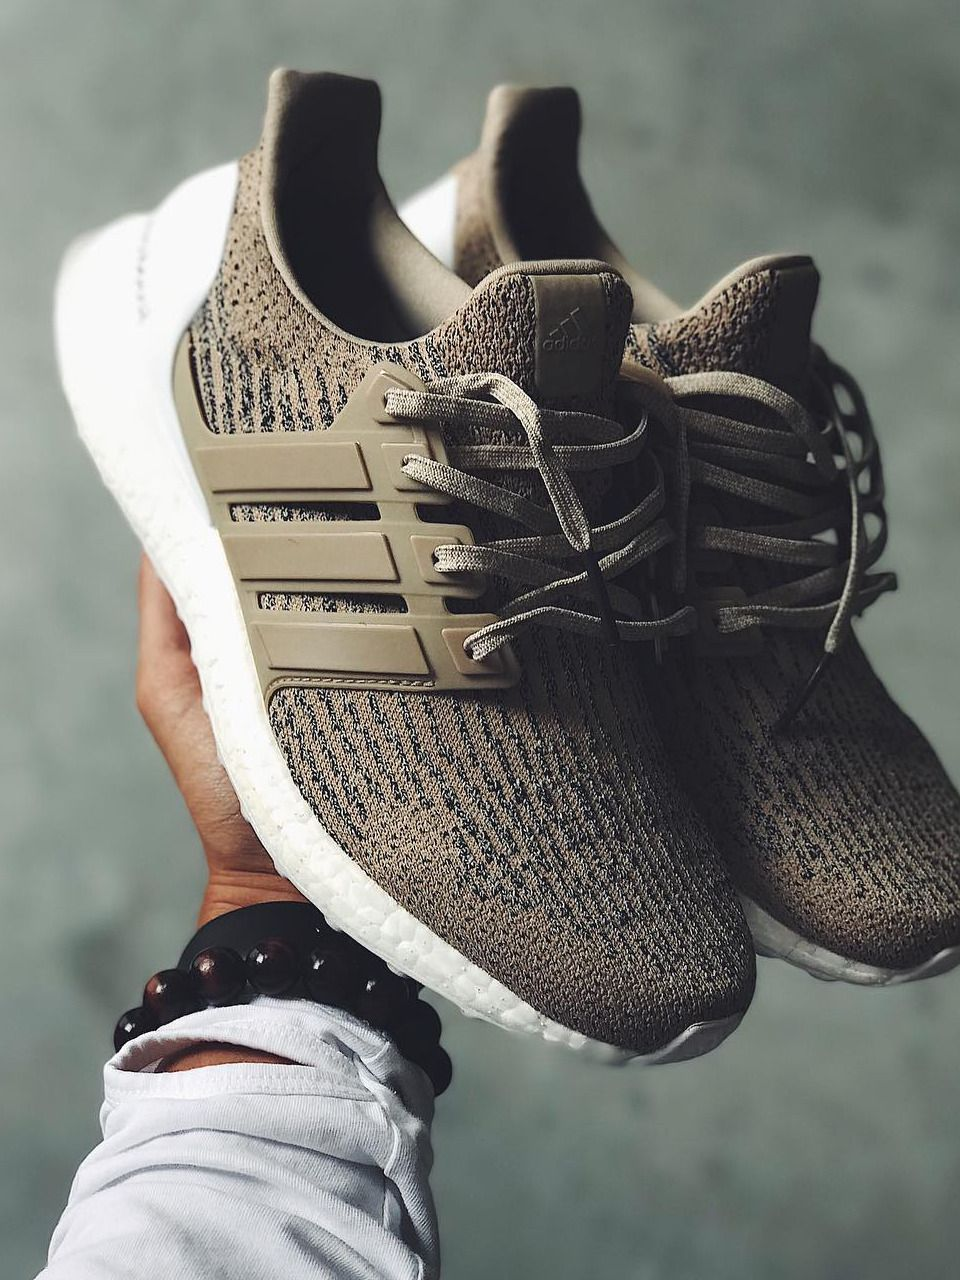 reputable site 9e12c 2b022 Adidas Ultra Boost 3.0 - Trace Khaki sample (by... – Sweetsoles – Sneakers,  kicks and trainers. On feet.